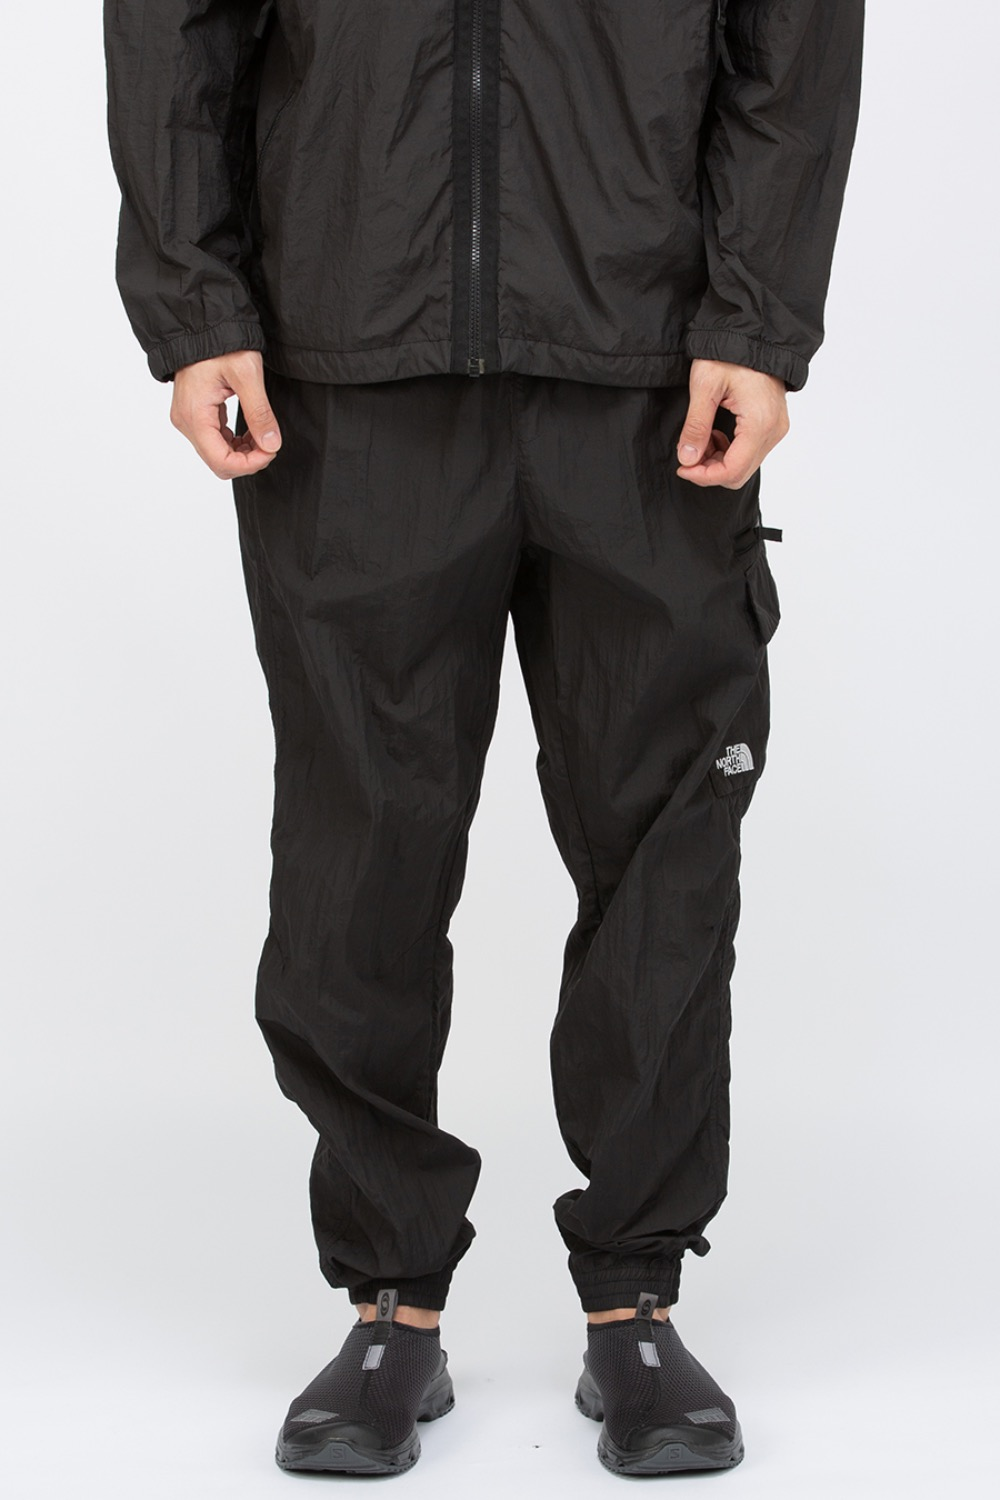 DAY LIGHT GD JOGGER ASH